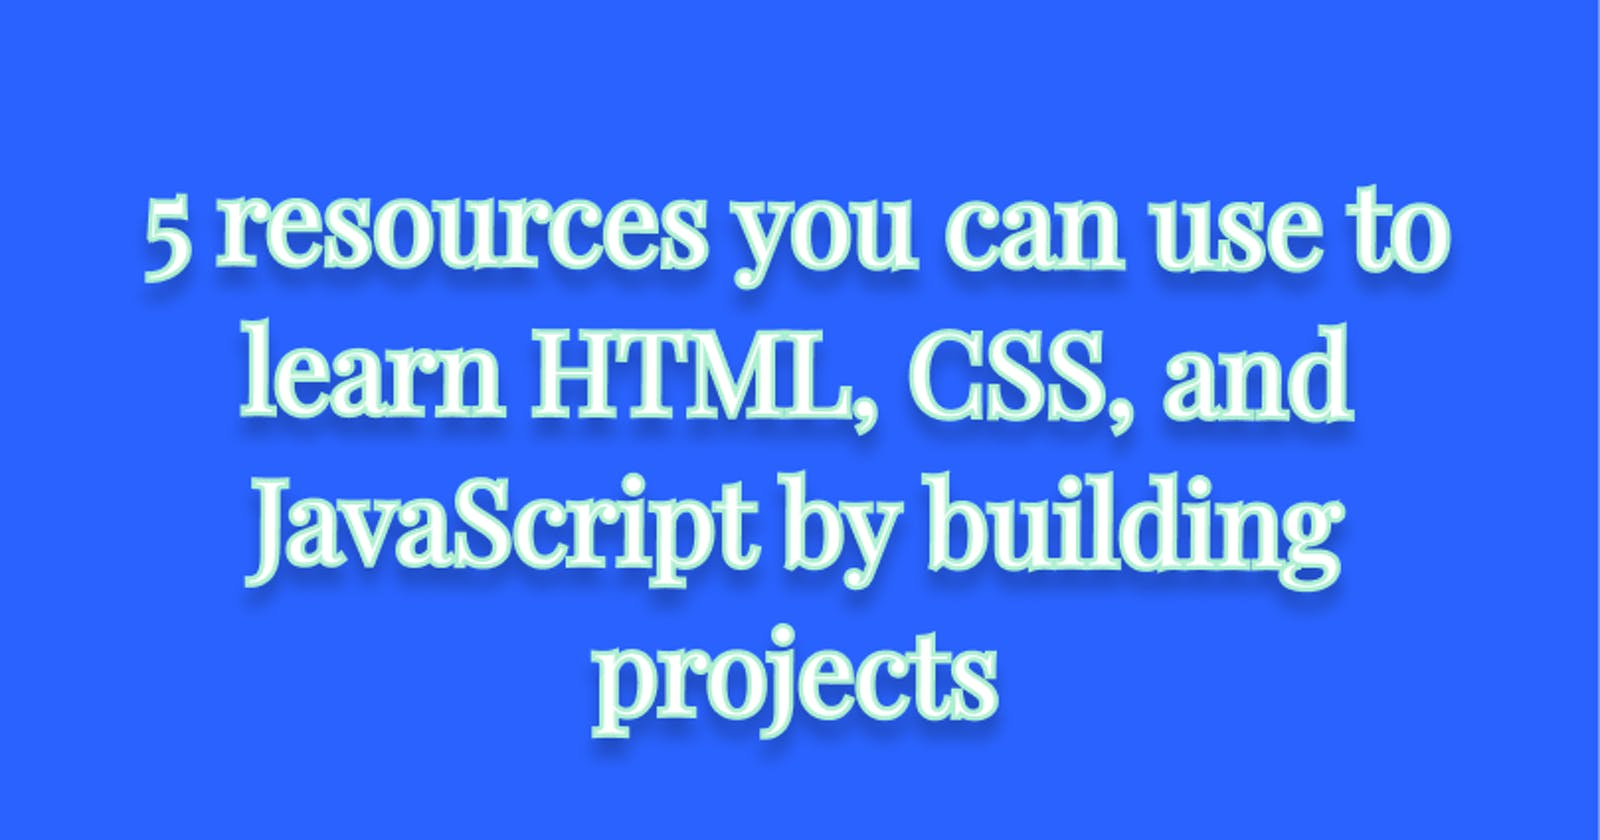 5 resources you can use to learn HTML, CSS, and JavaScript by building projects